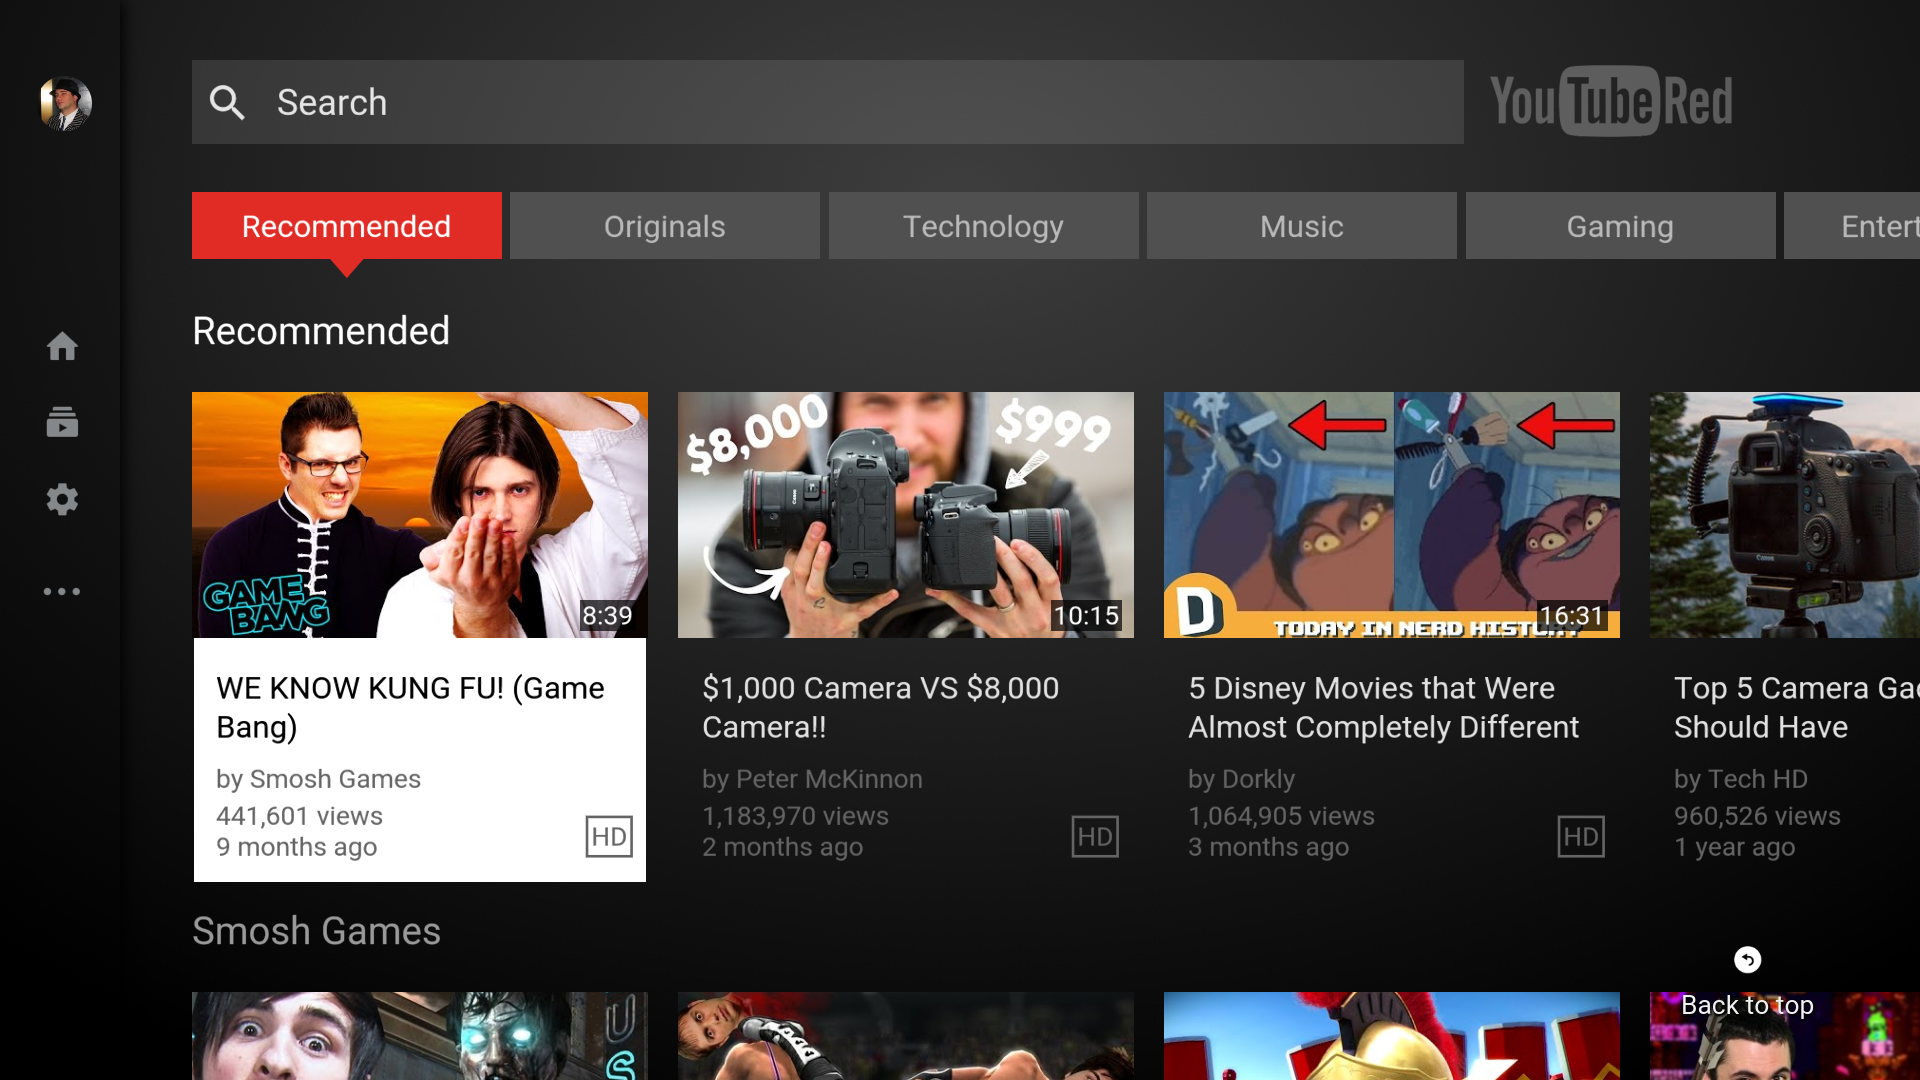 Youtube For Android Tv Gets Its First Update In Over A Year With Massive Redesign 9to5google